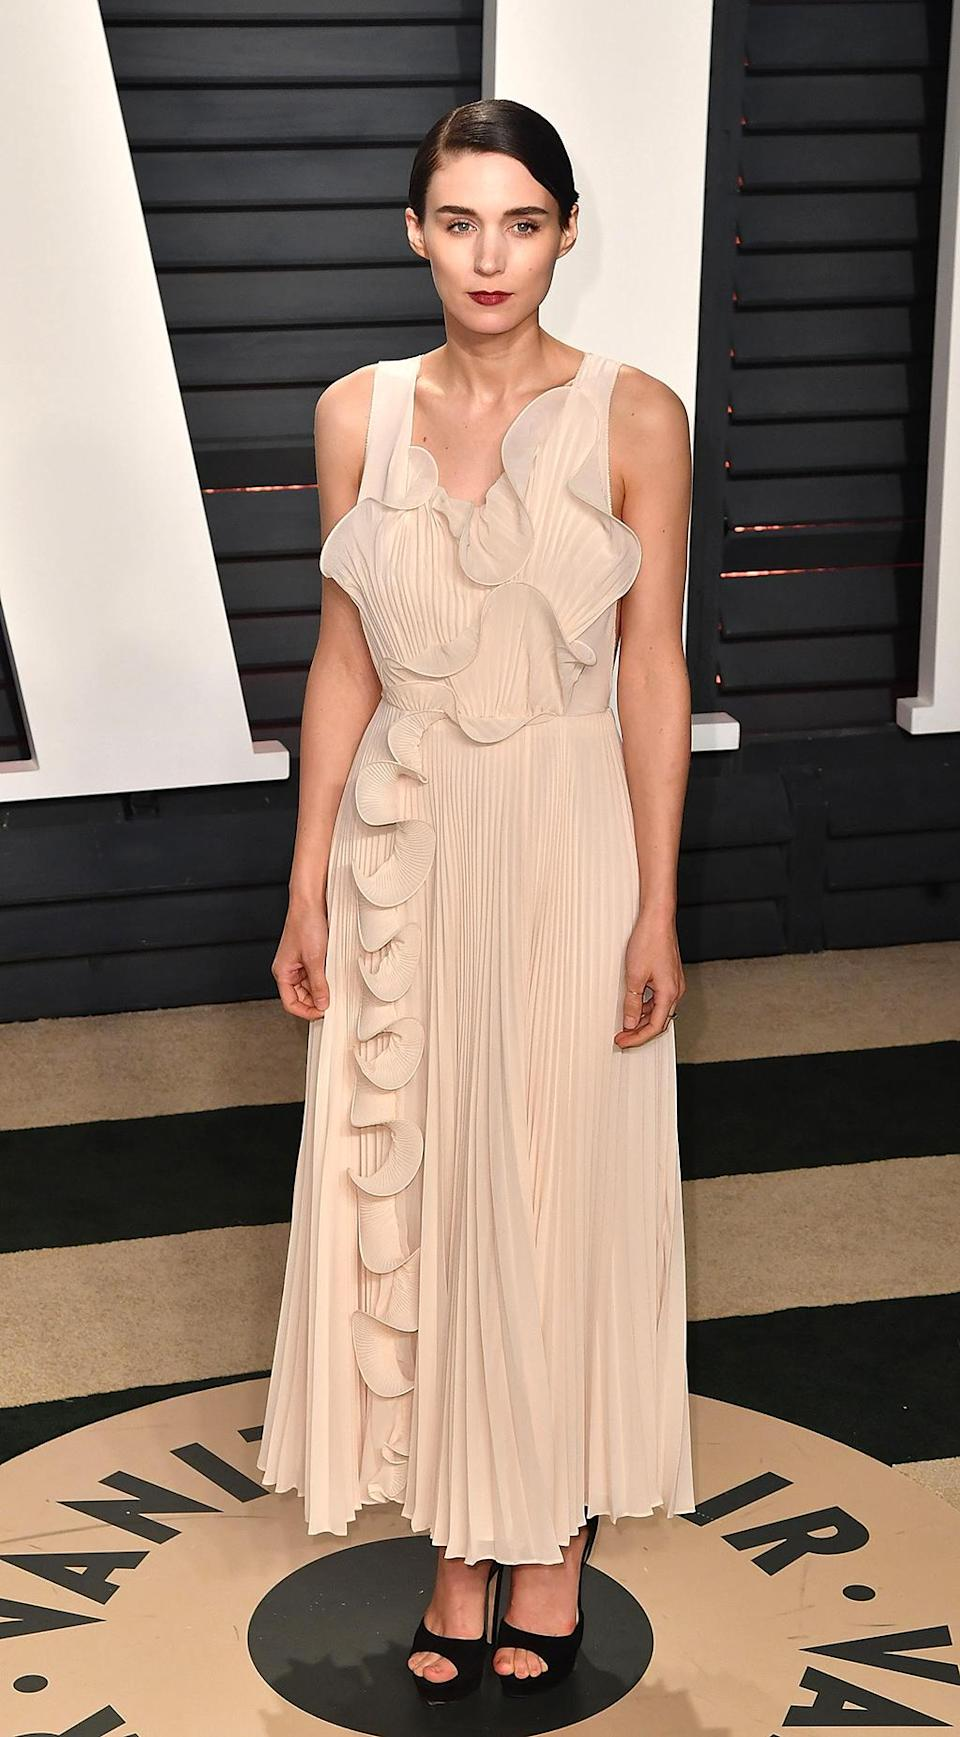 <p>Rooney Mara attends the 2017 Vanity Fair Oscar Party Hosted by Graydon Carter at the Wallis Annenberg Center for the Performing Arts on February 26, 2017 in Beverly Hills, California. (Photo by C Flanigan/Getty Images) </p>